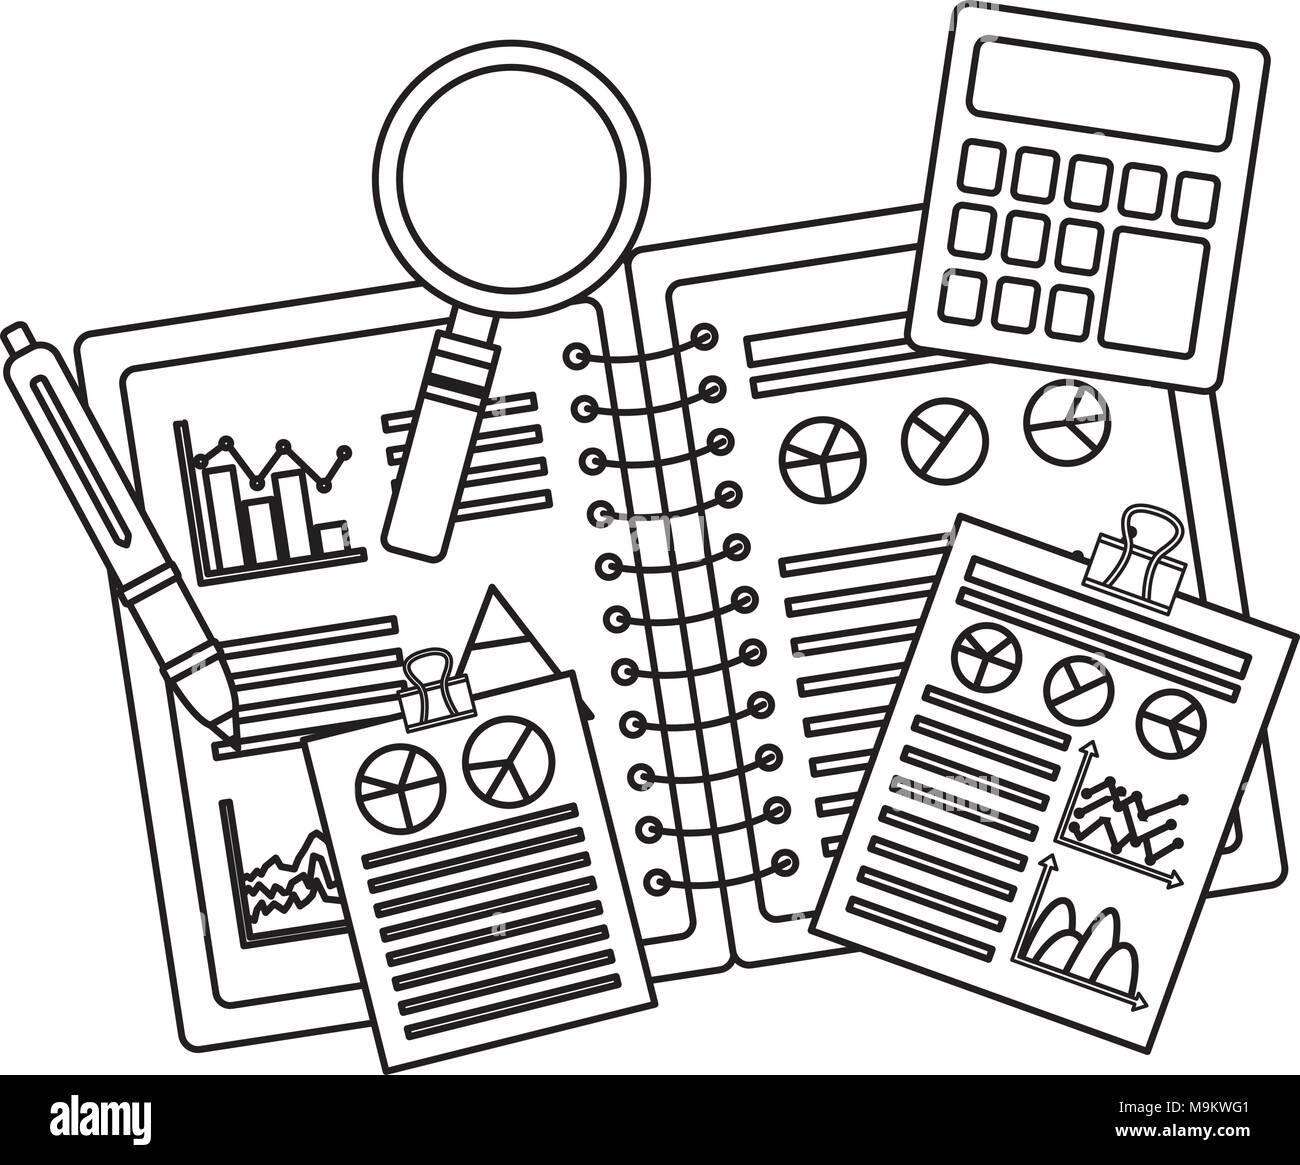 graphs document stock vector images alamy Presentation Visual Resume Templates business set notebook documents with graphs calculator pen stock vector